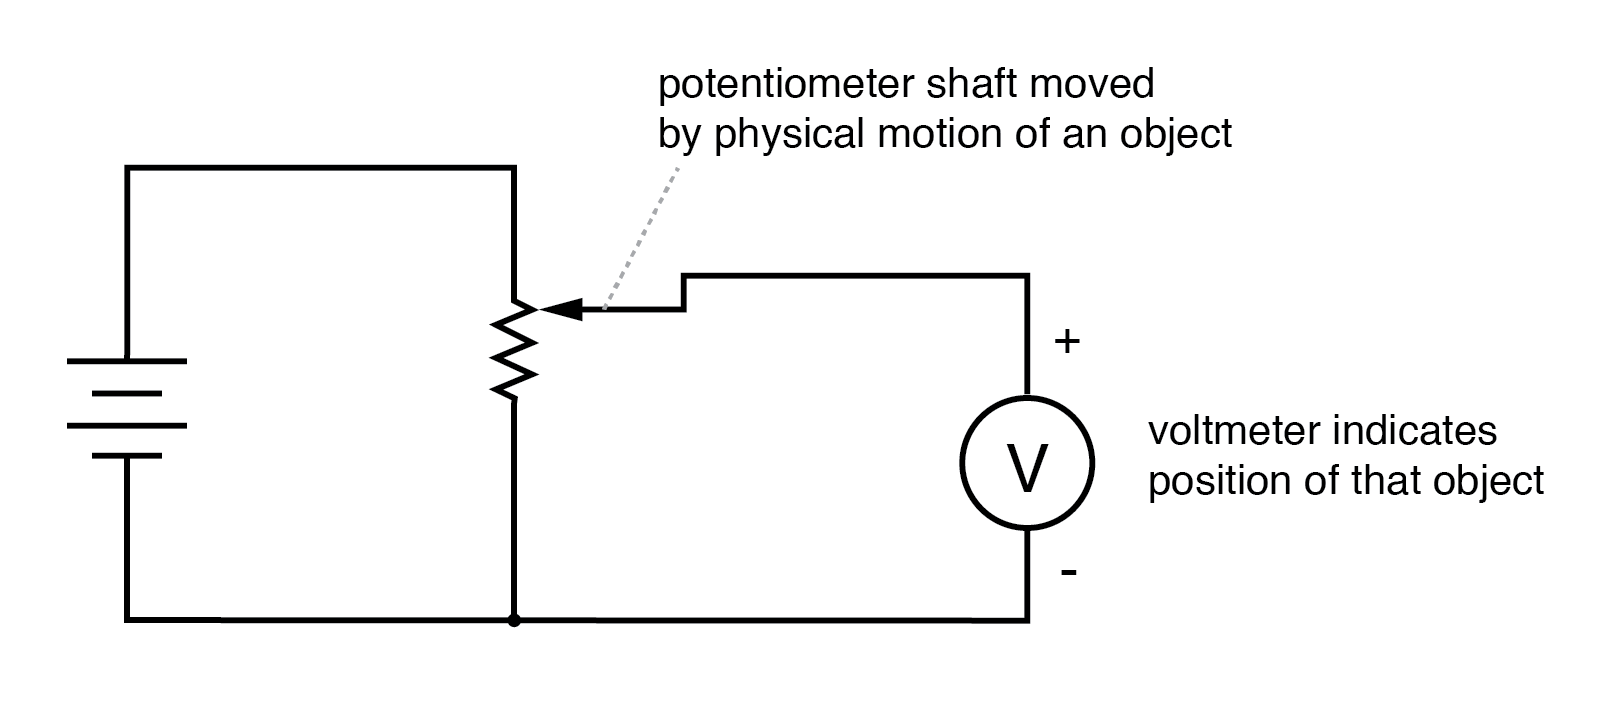 hight resolution of potentiometer tap voltage indicates position of an object slaved to the shaft